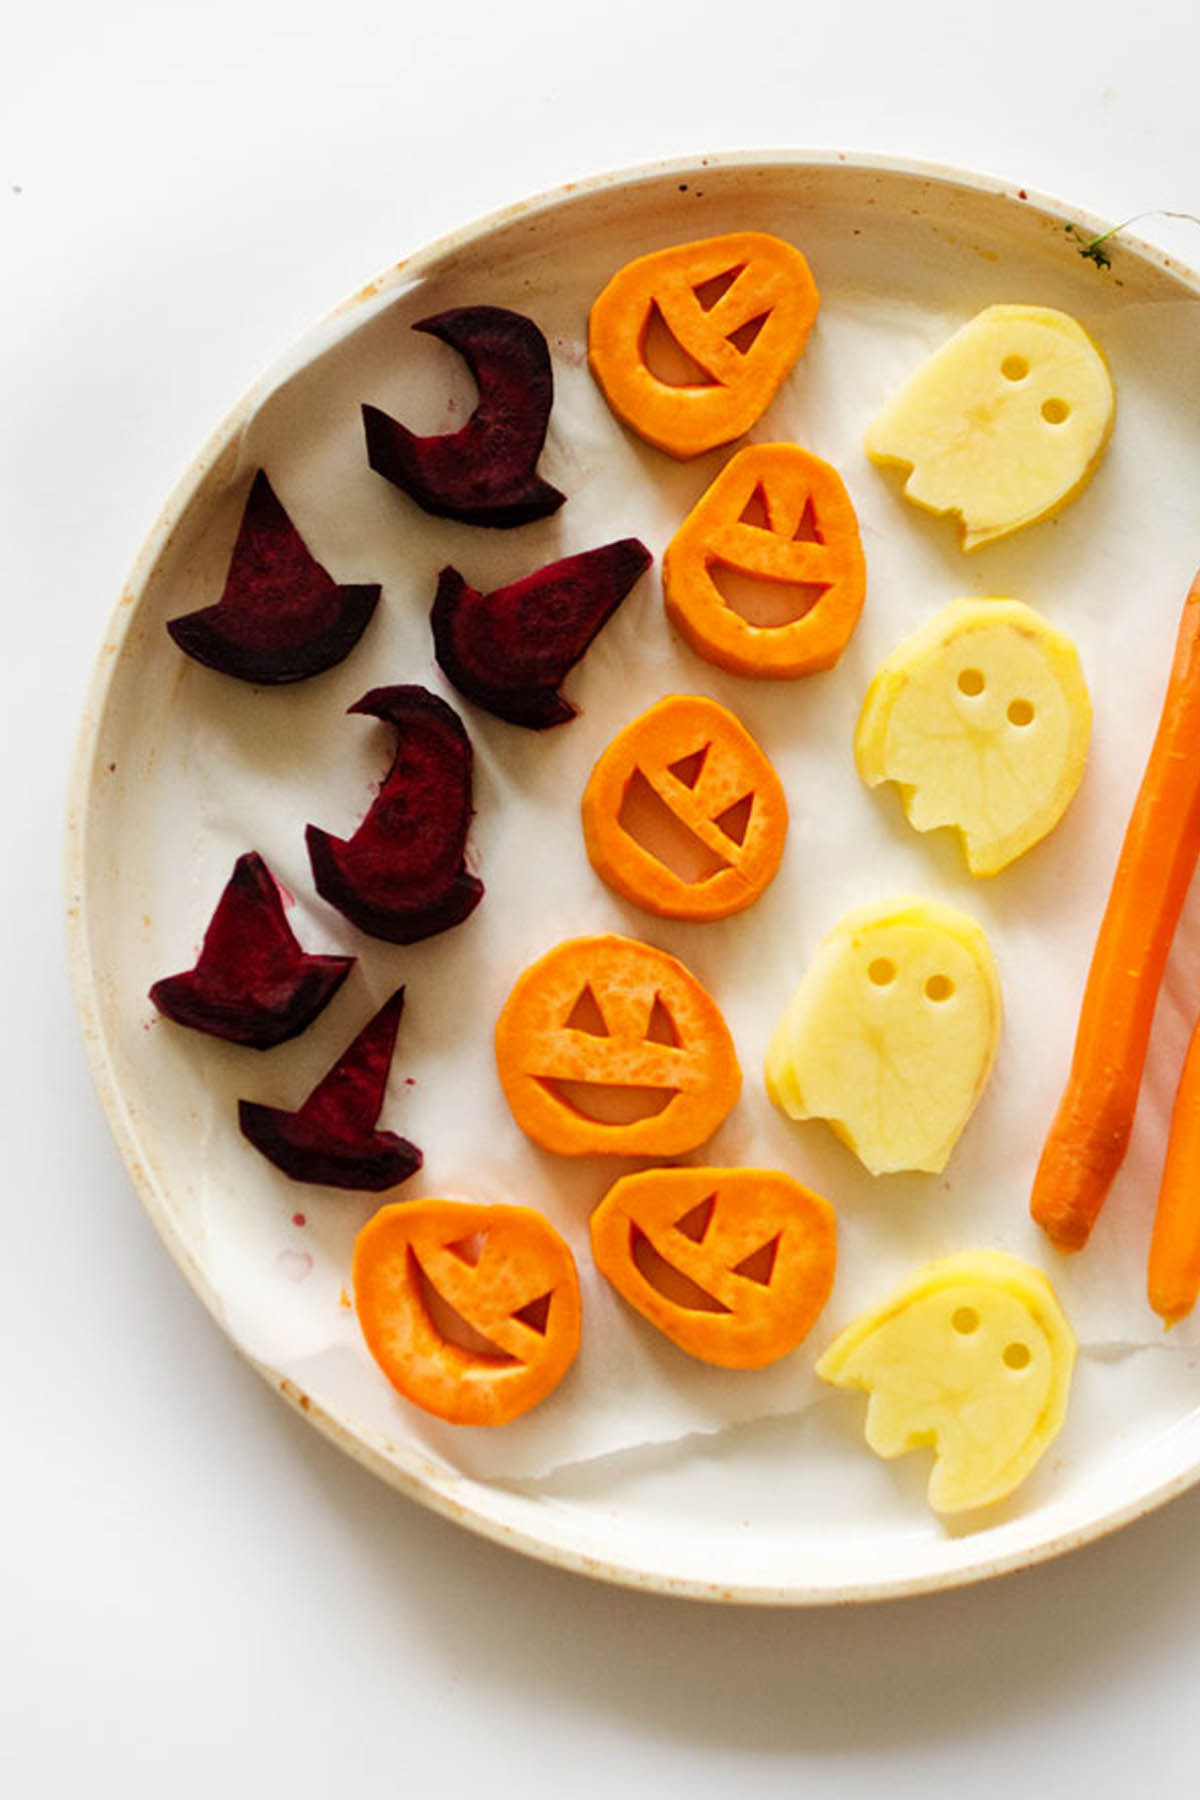 Spooky Halloween Dinners  25 Spooky Halloween Dinner Ideas Best Recipes for